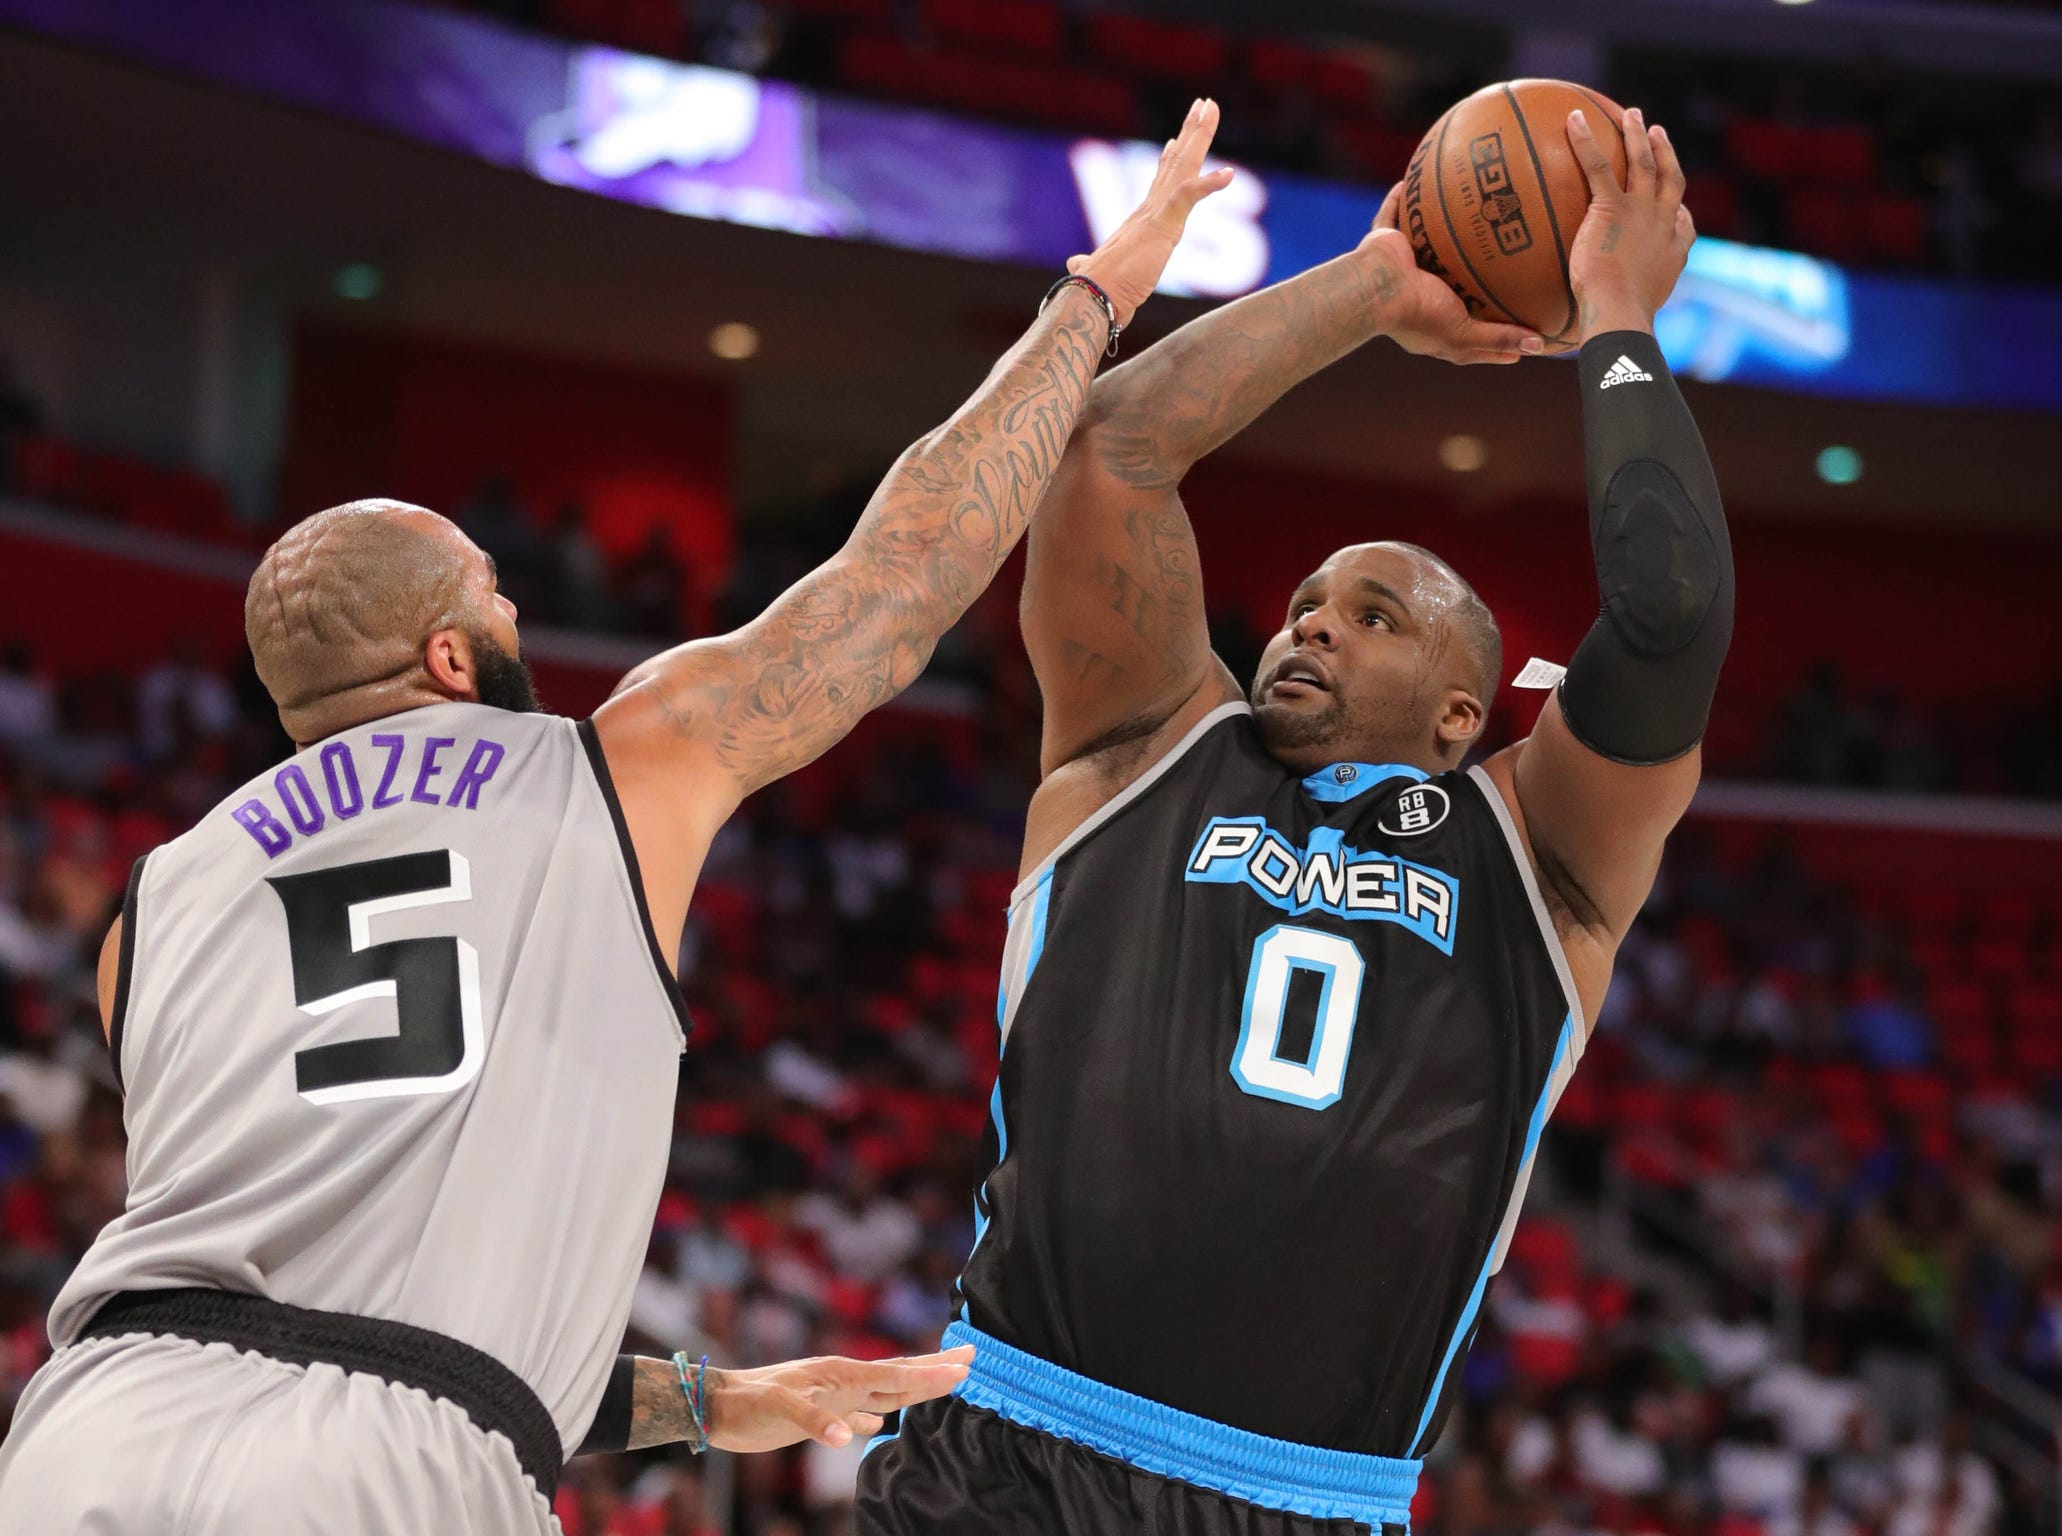 Ghost's Carlos Boozer defends against Power's Glen Davis during BIG3 action on Friday, July 13, 2018 at Little Caesars Arena in Detroit.